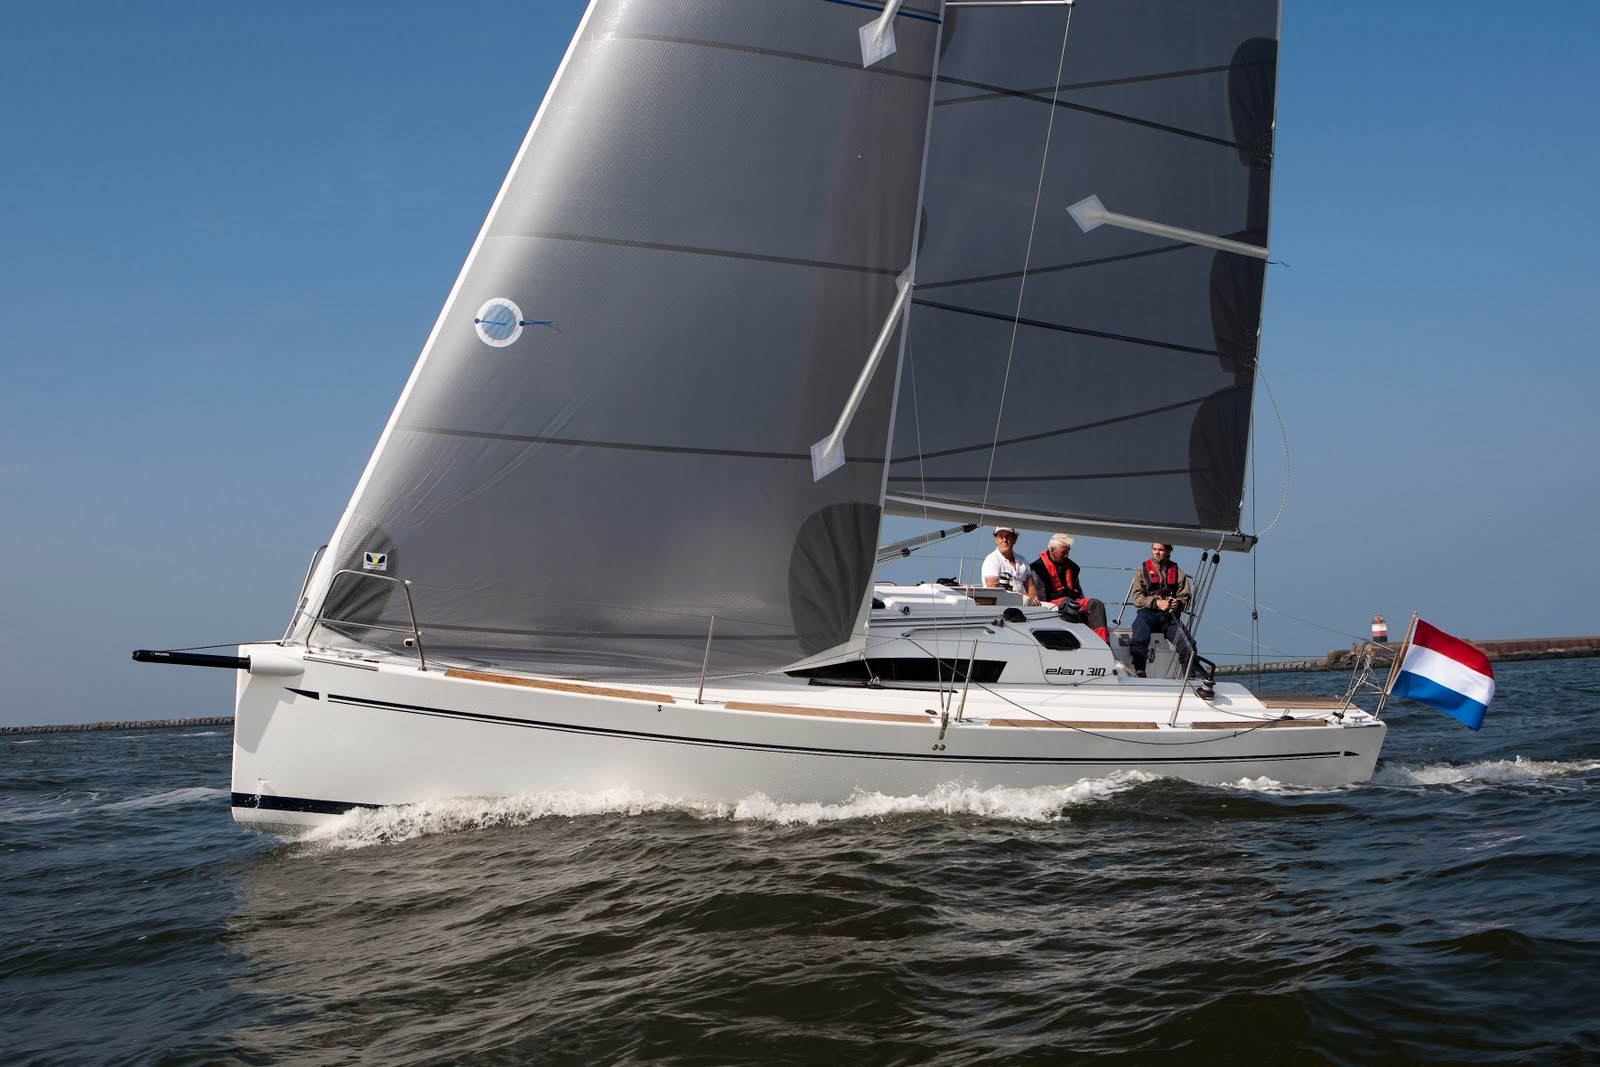 Elan 310 nominated as HISWA Yacht of the Year